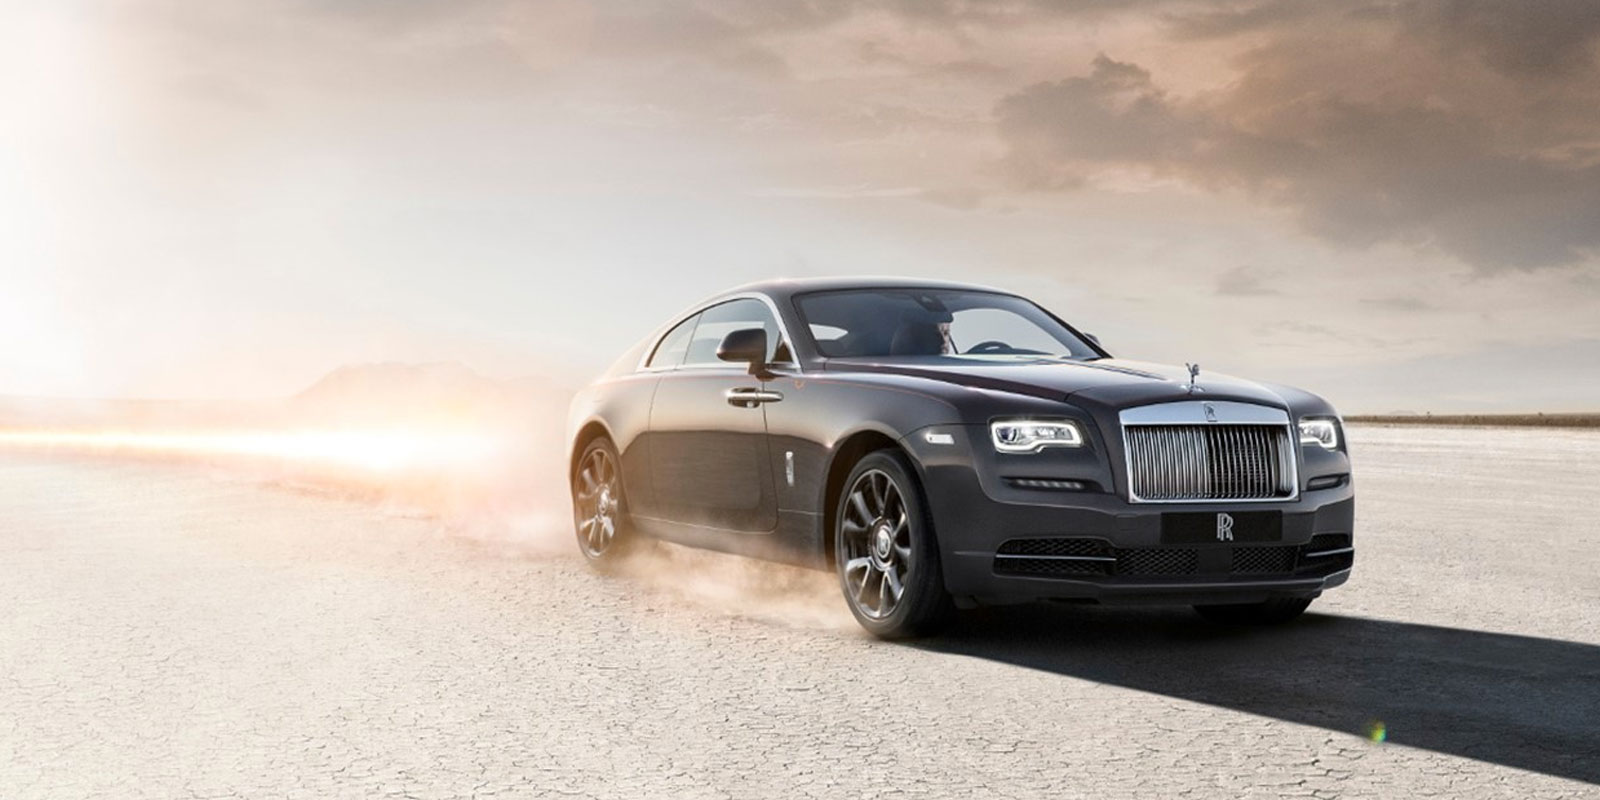 New Rolls-Royce Wraith Series Cars at Grange